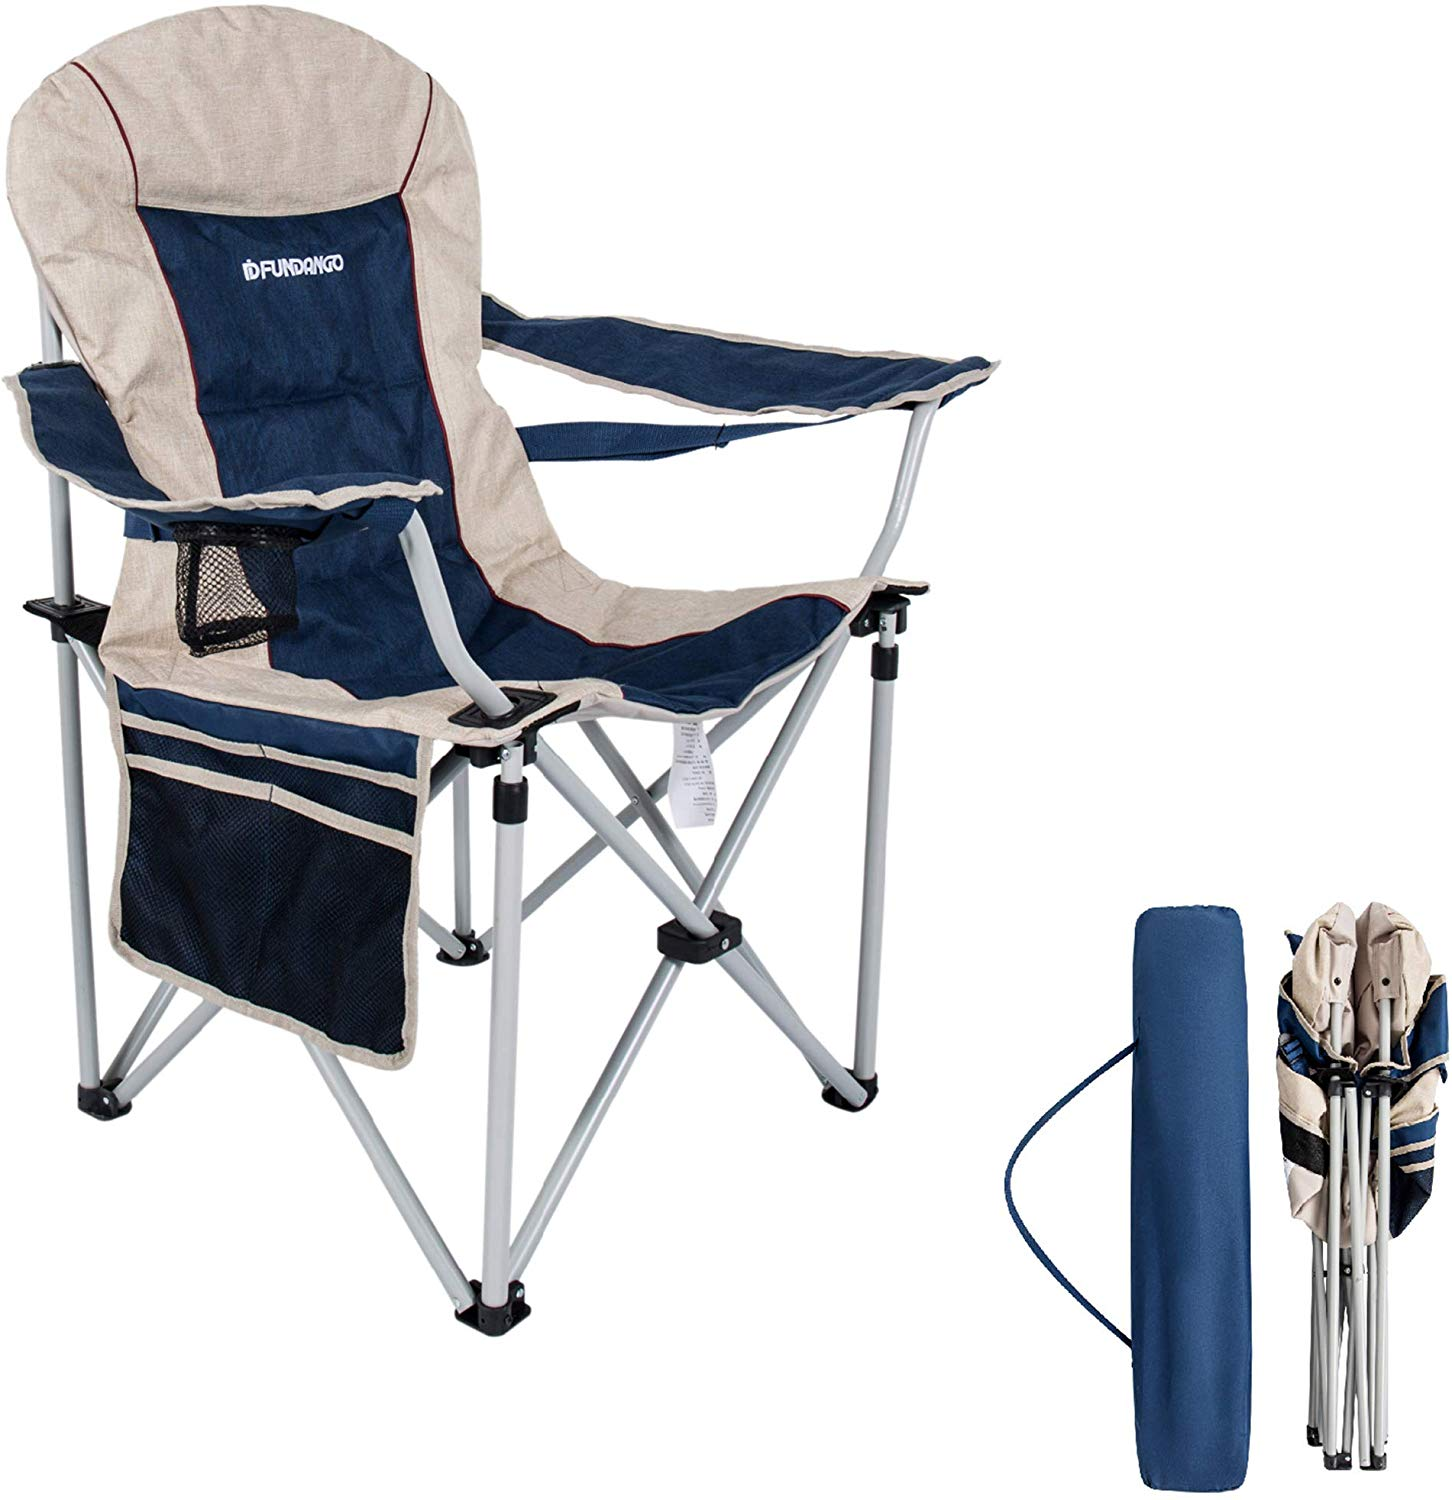 High Back Camping Chair with Carry Bag